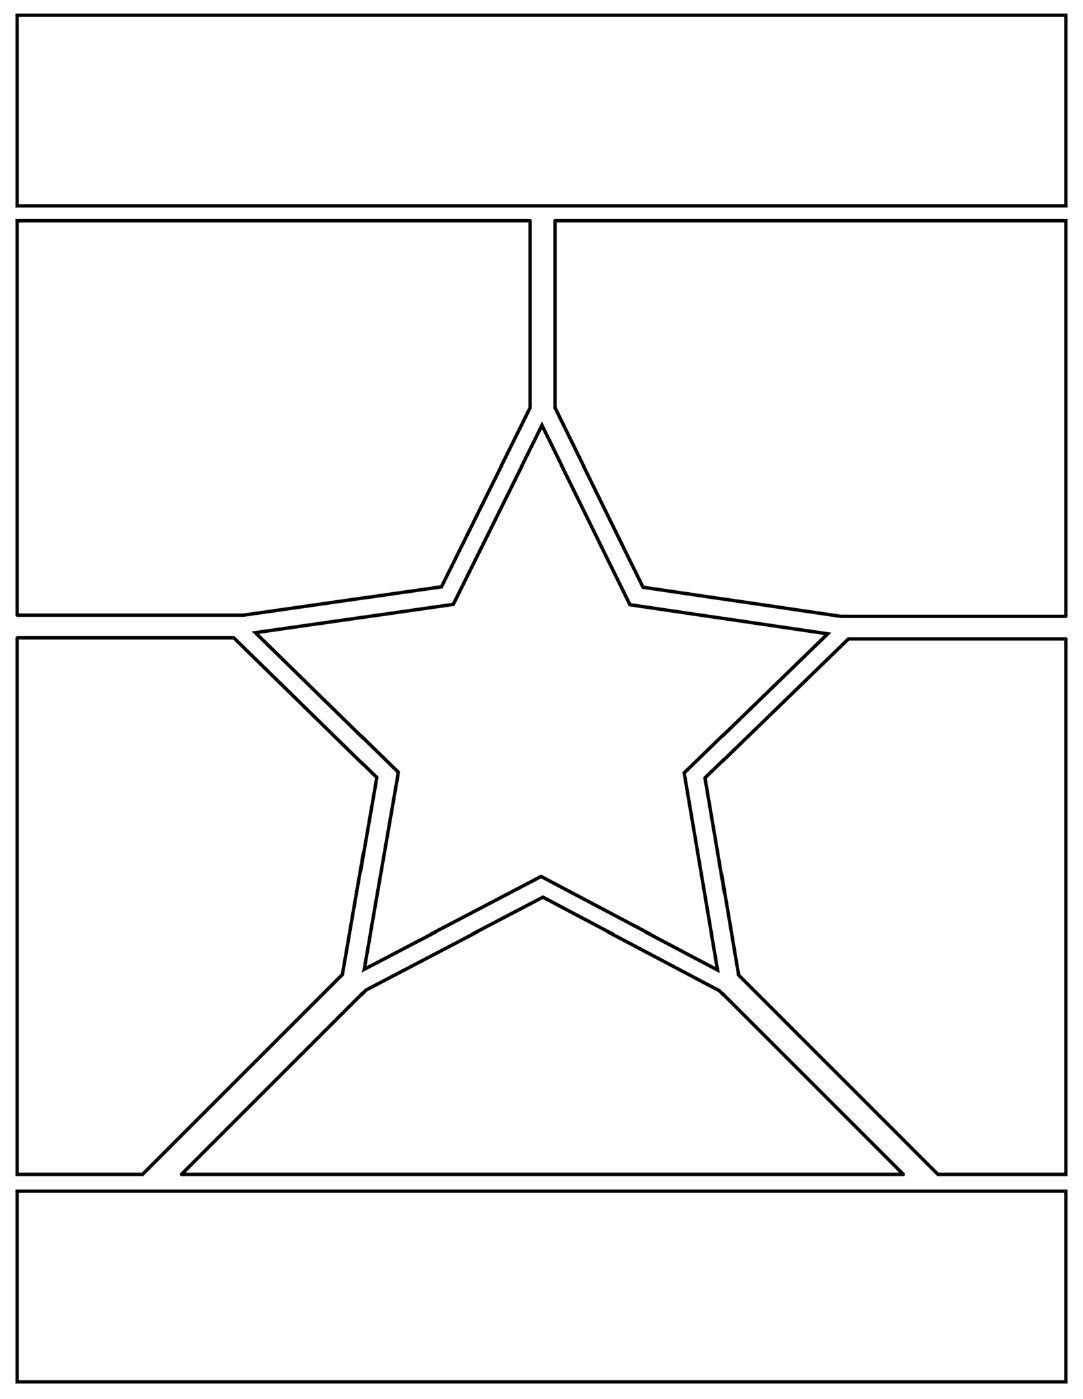 Manga Page with Star Free Download